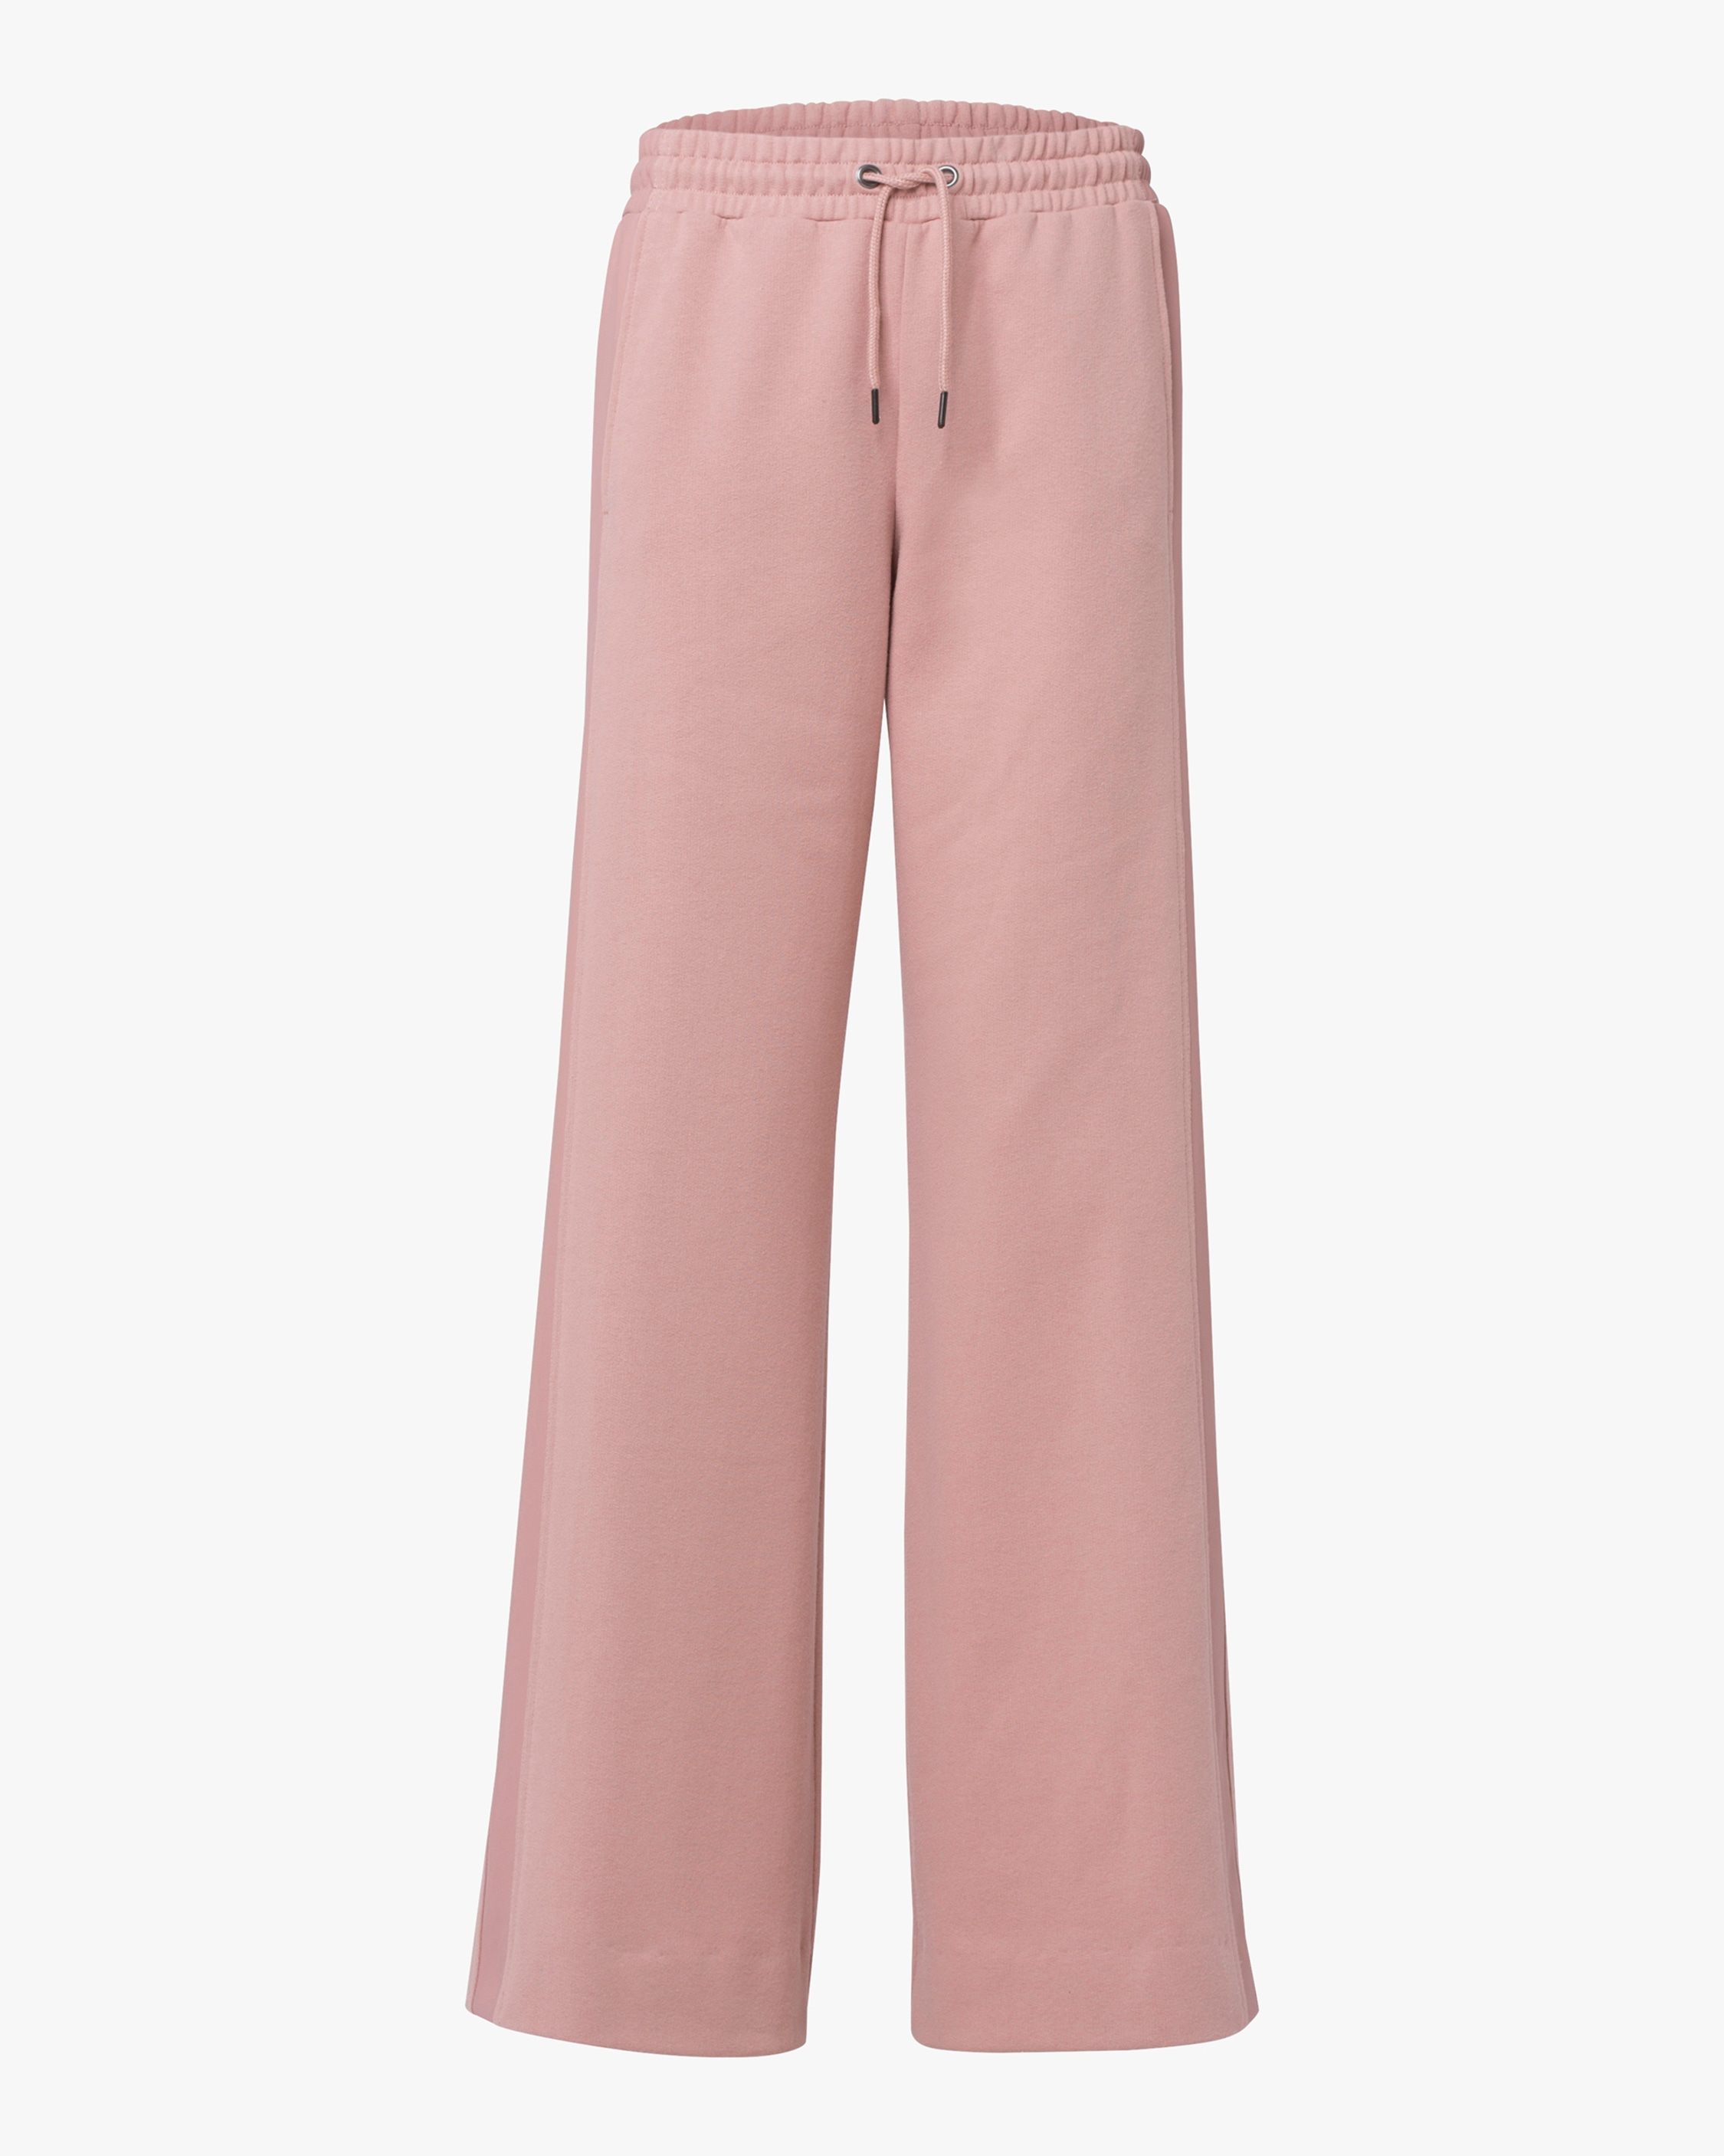 Dorothee Schumacher Pants CASUAL COOLNESS PANTS